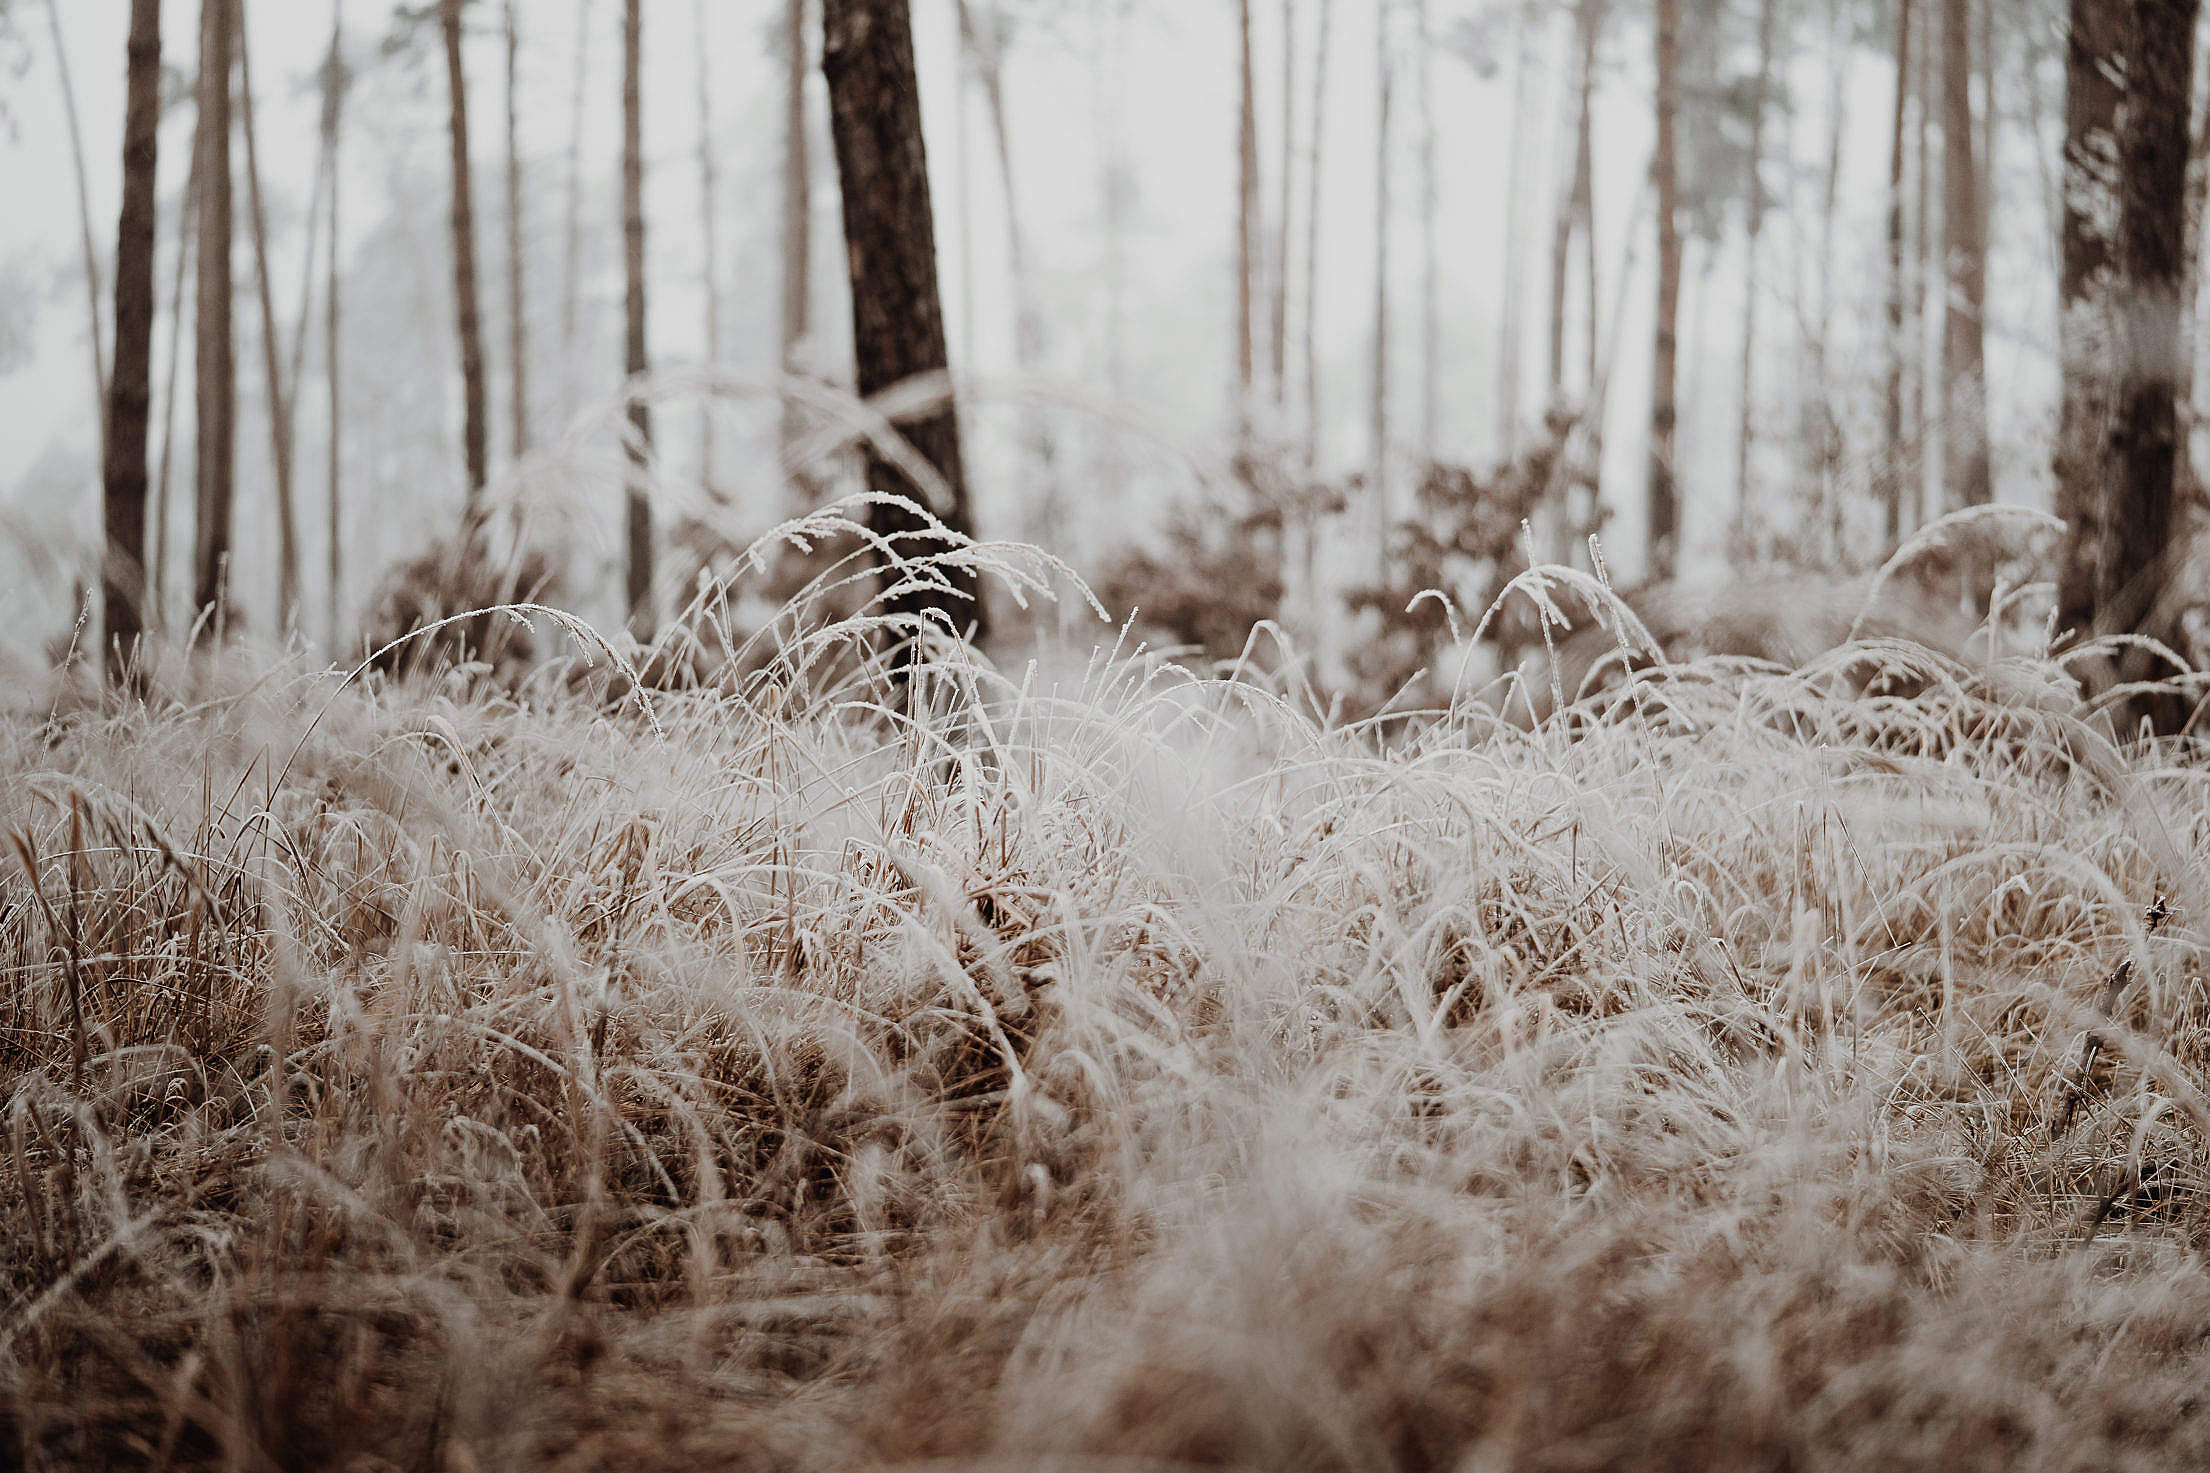 Grass Covered with a Hoarfrost in a Wild Forest Free Stock Photo